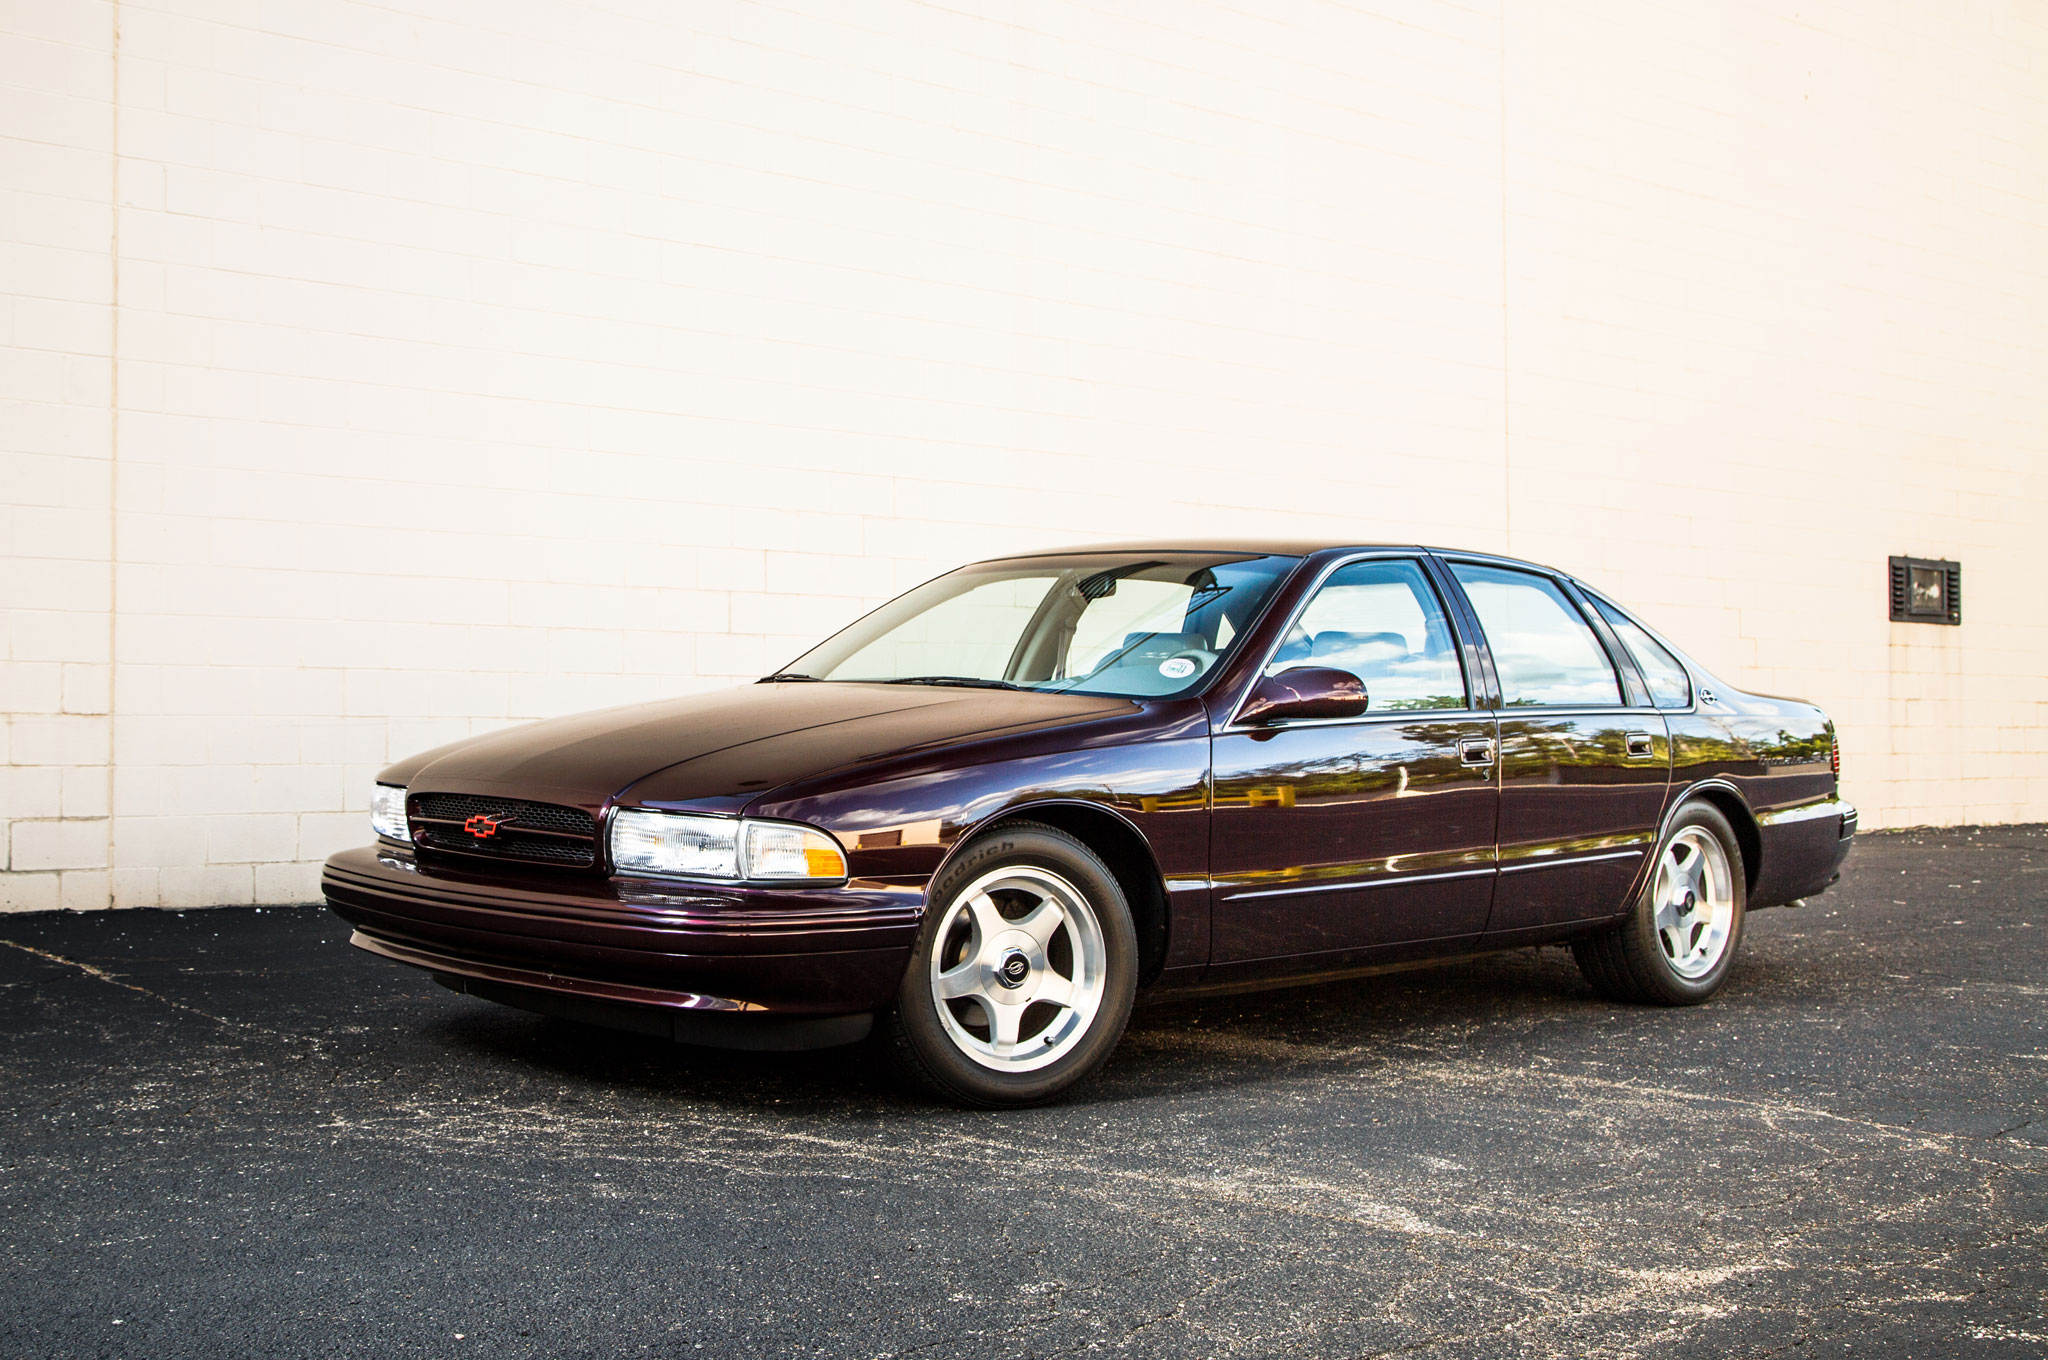 Collectible Classic: 1994-1996 Chevrolet Impala SS